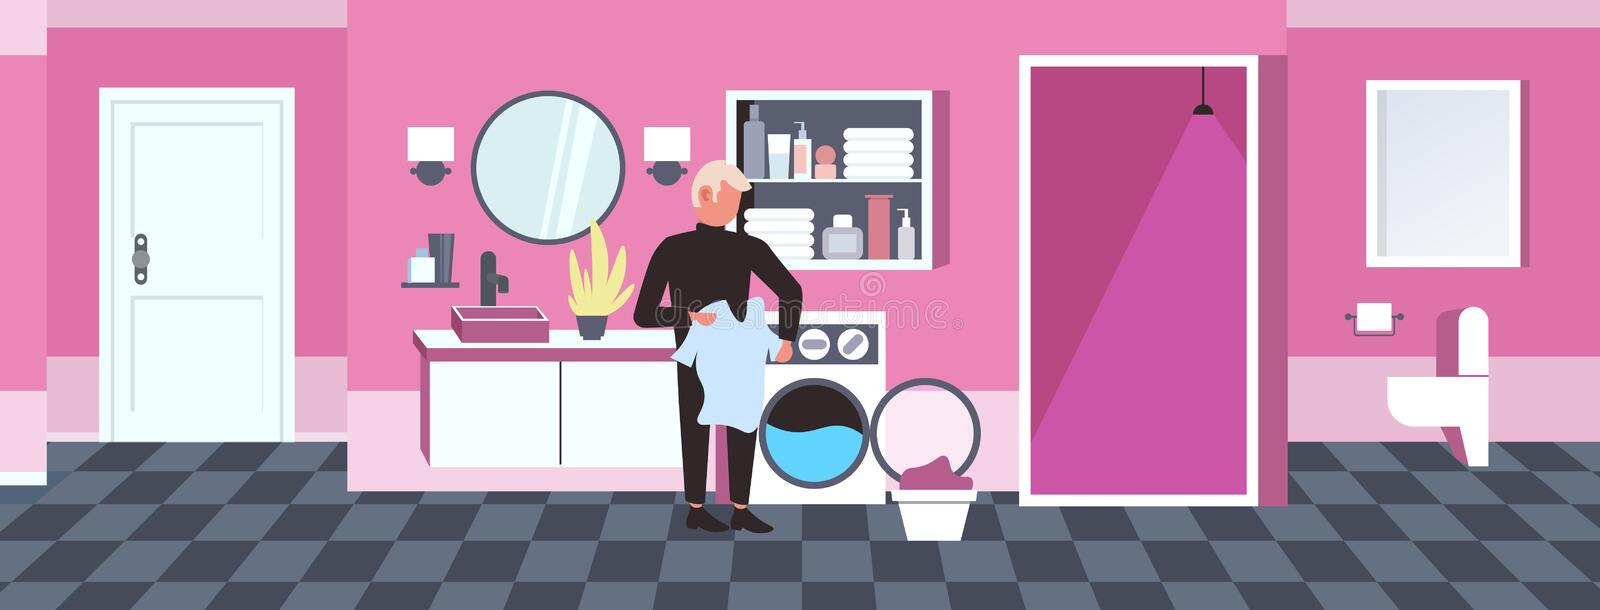 Man doing housework guy loading clothes in washing machine cleaning service concept modern bathroom interior horizontal. Full length sketch vector illustration stock illustration